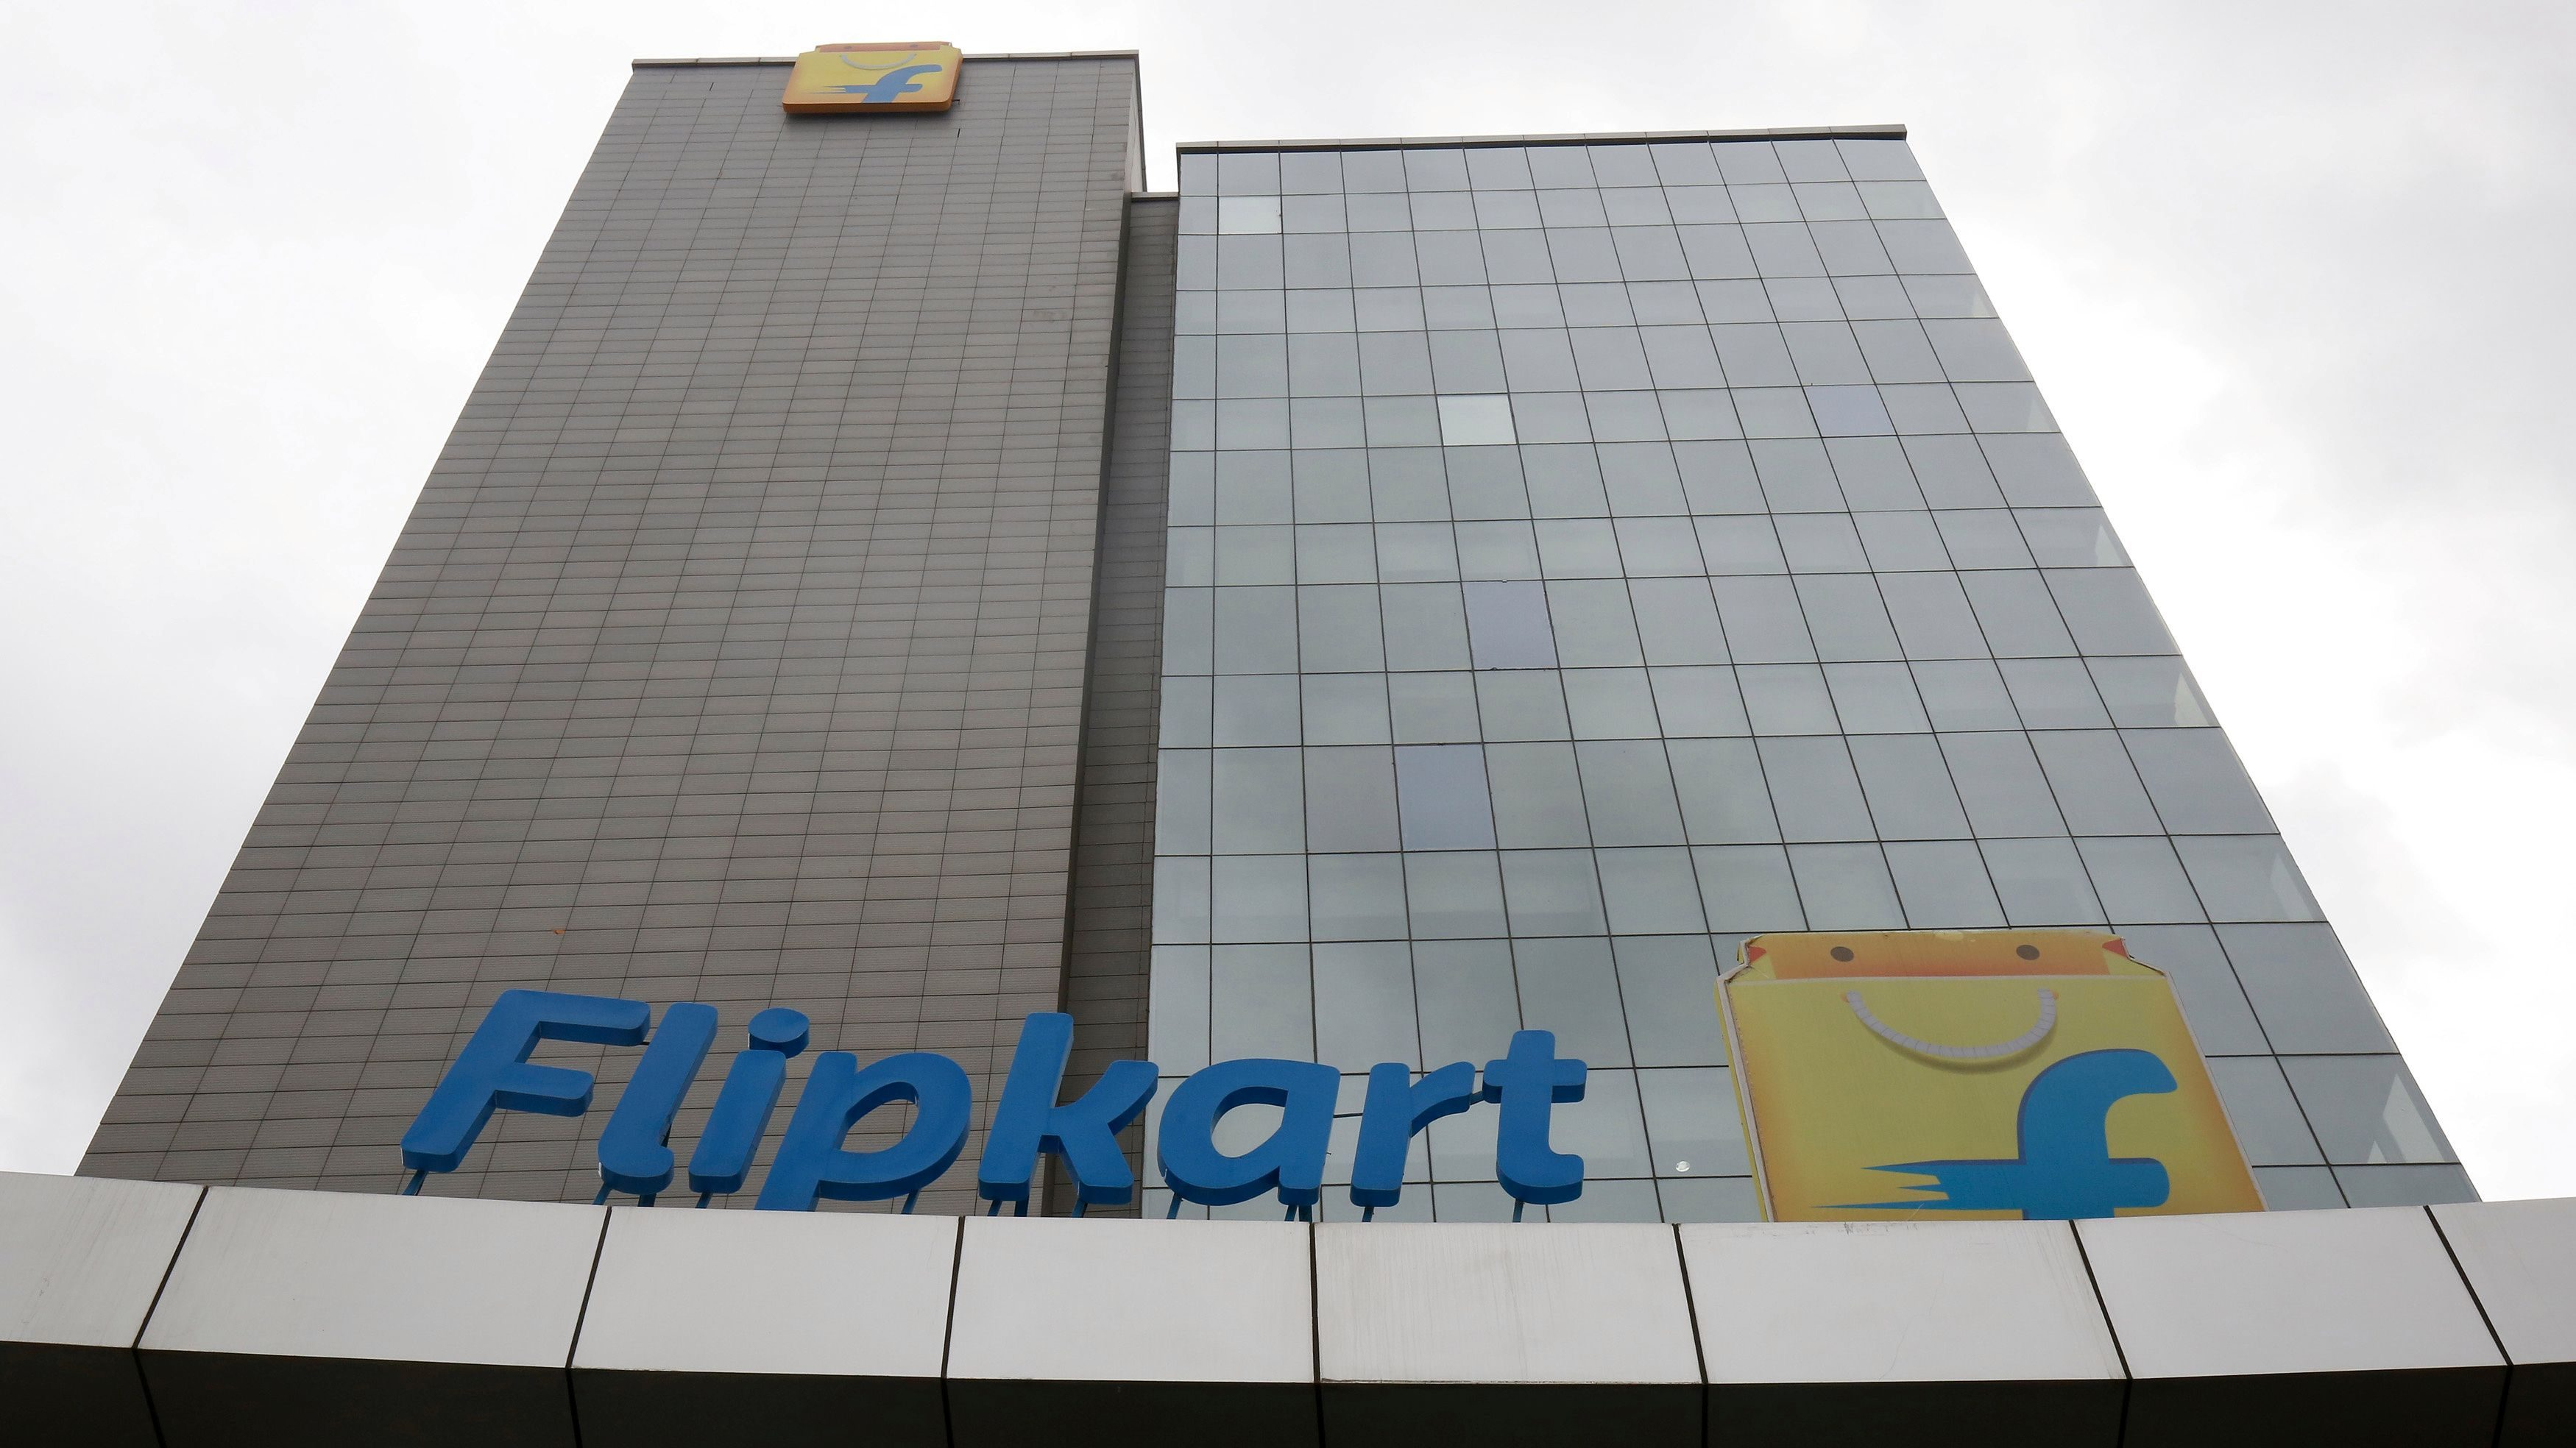 The logo of India's largest e-commerce firm Flipkart is seen on the facade of the company's headquarters in Bengaluru, India July 7, 2017.